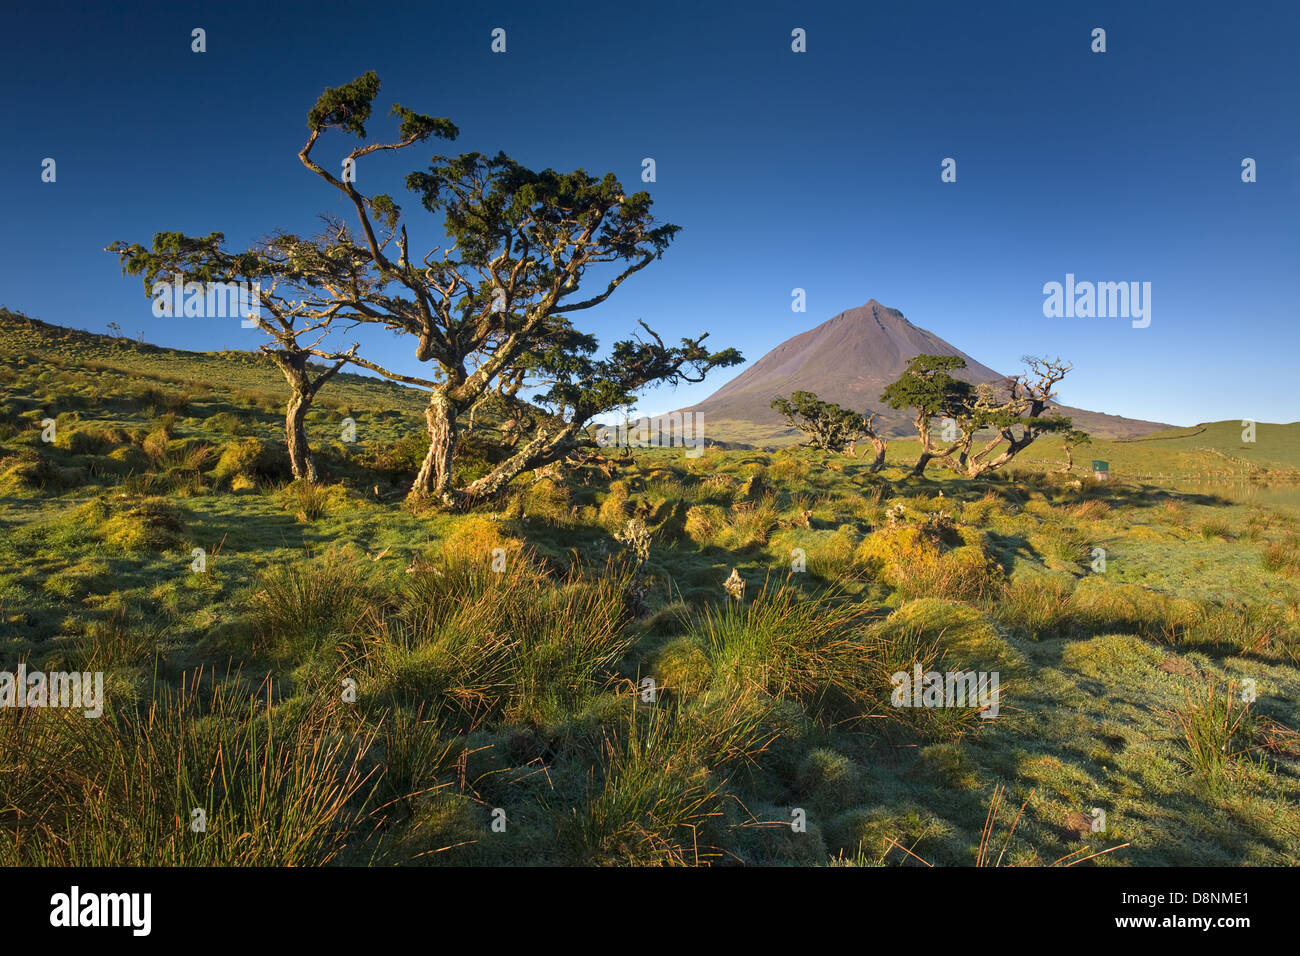 Trees at sunrise in Captain Lagoon with pico mountain in the horizon - Pico island - Azores - Stock Image